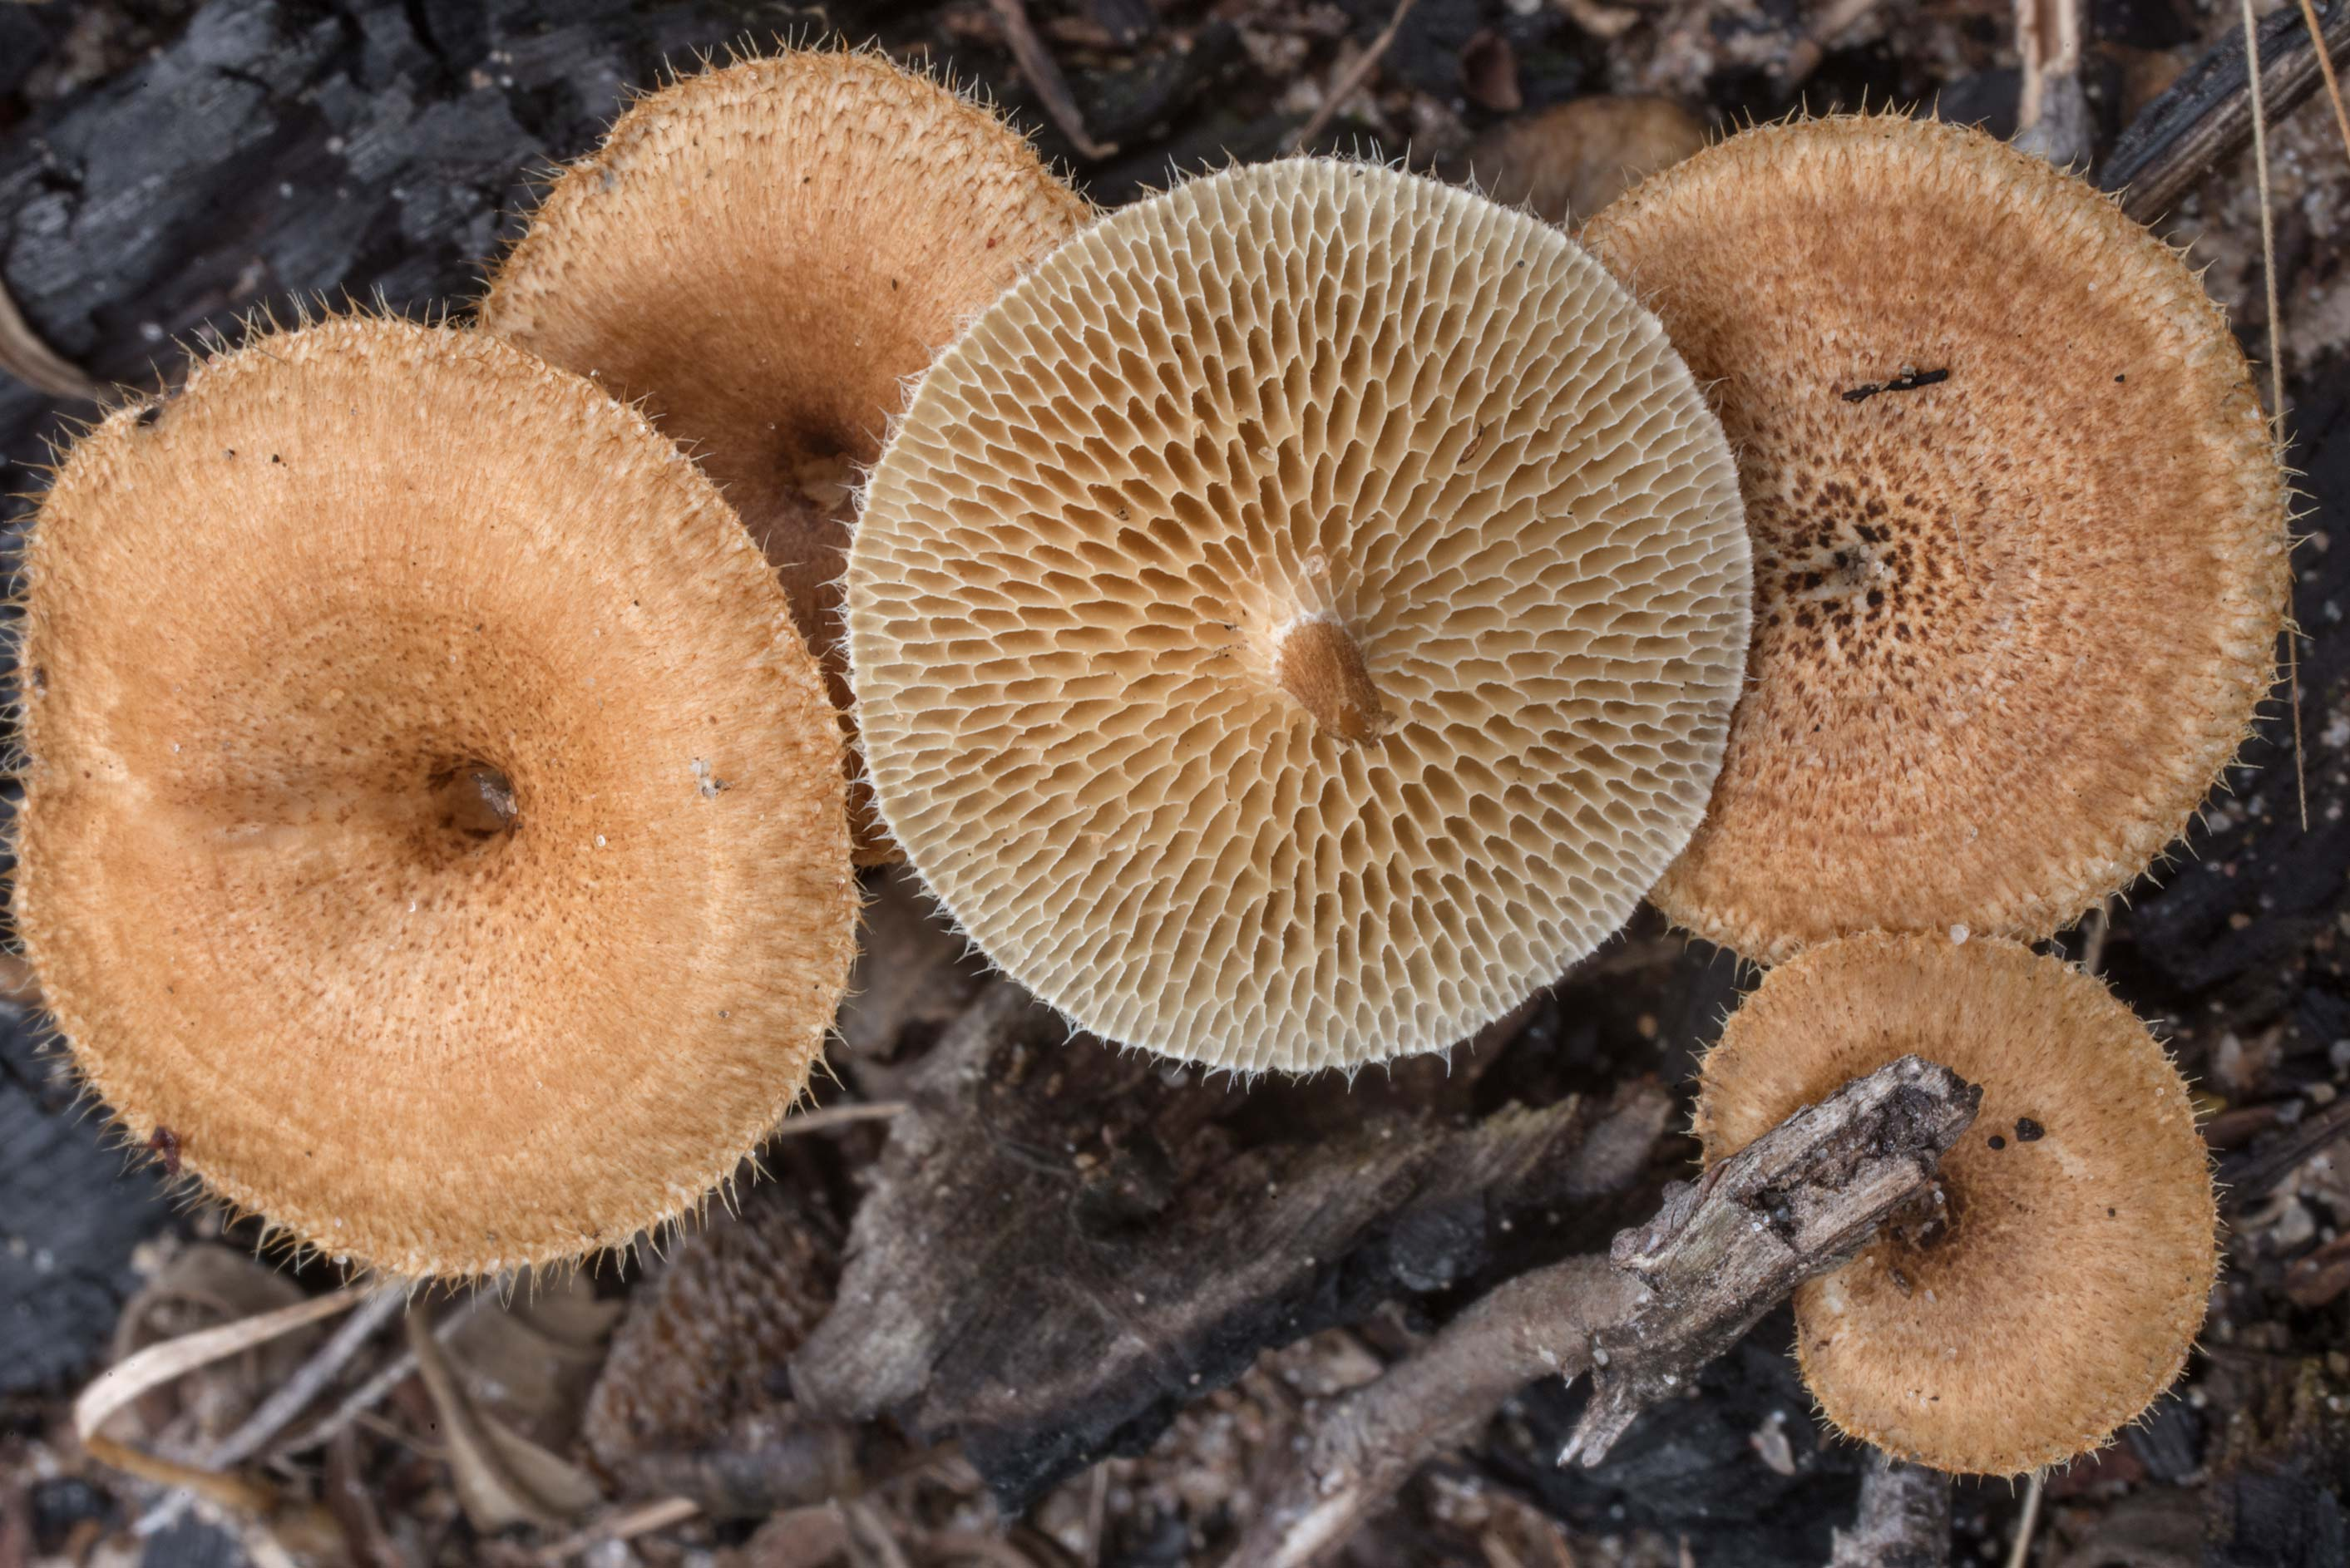 Common fieldcap mushrooms (Agrocybe pediades) on...in Bastrop State Park. Bastrop, Texas